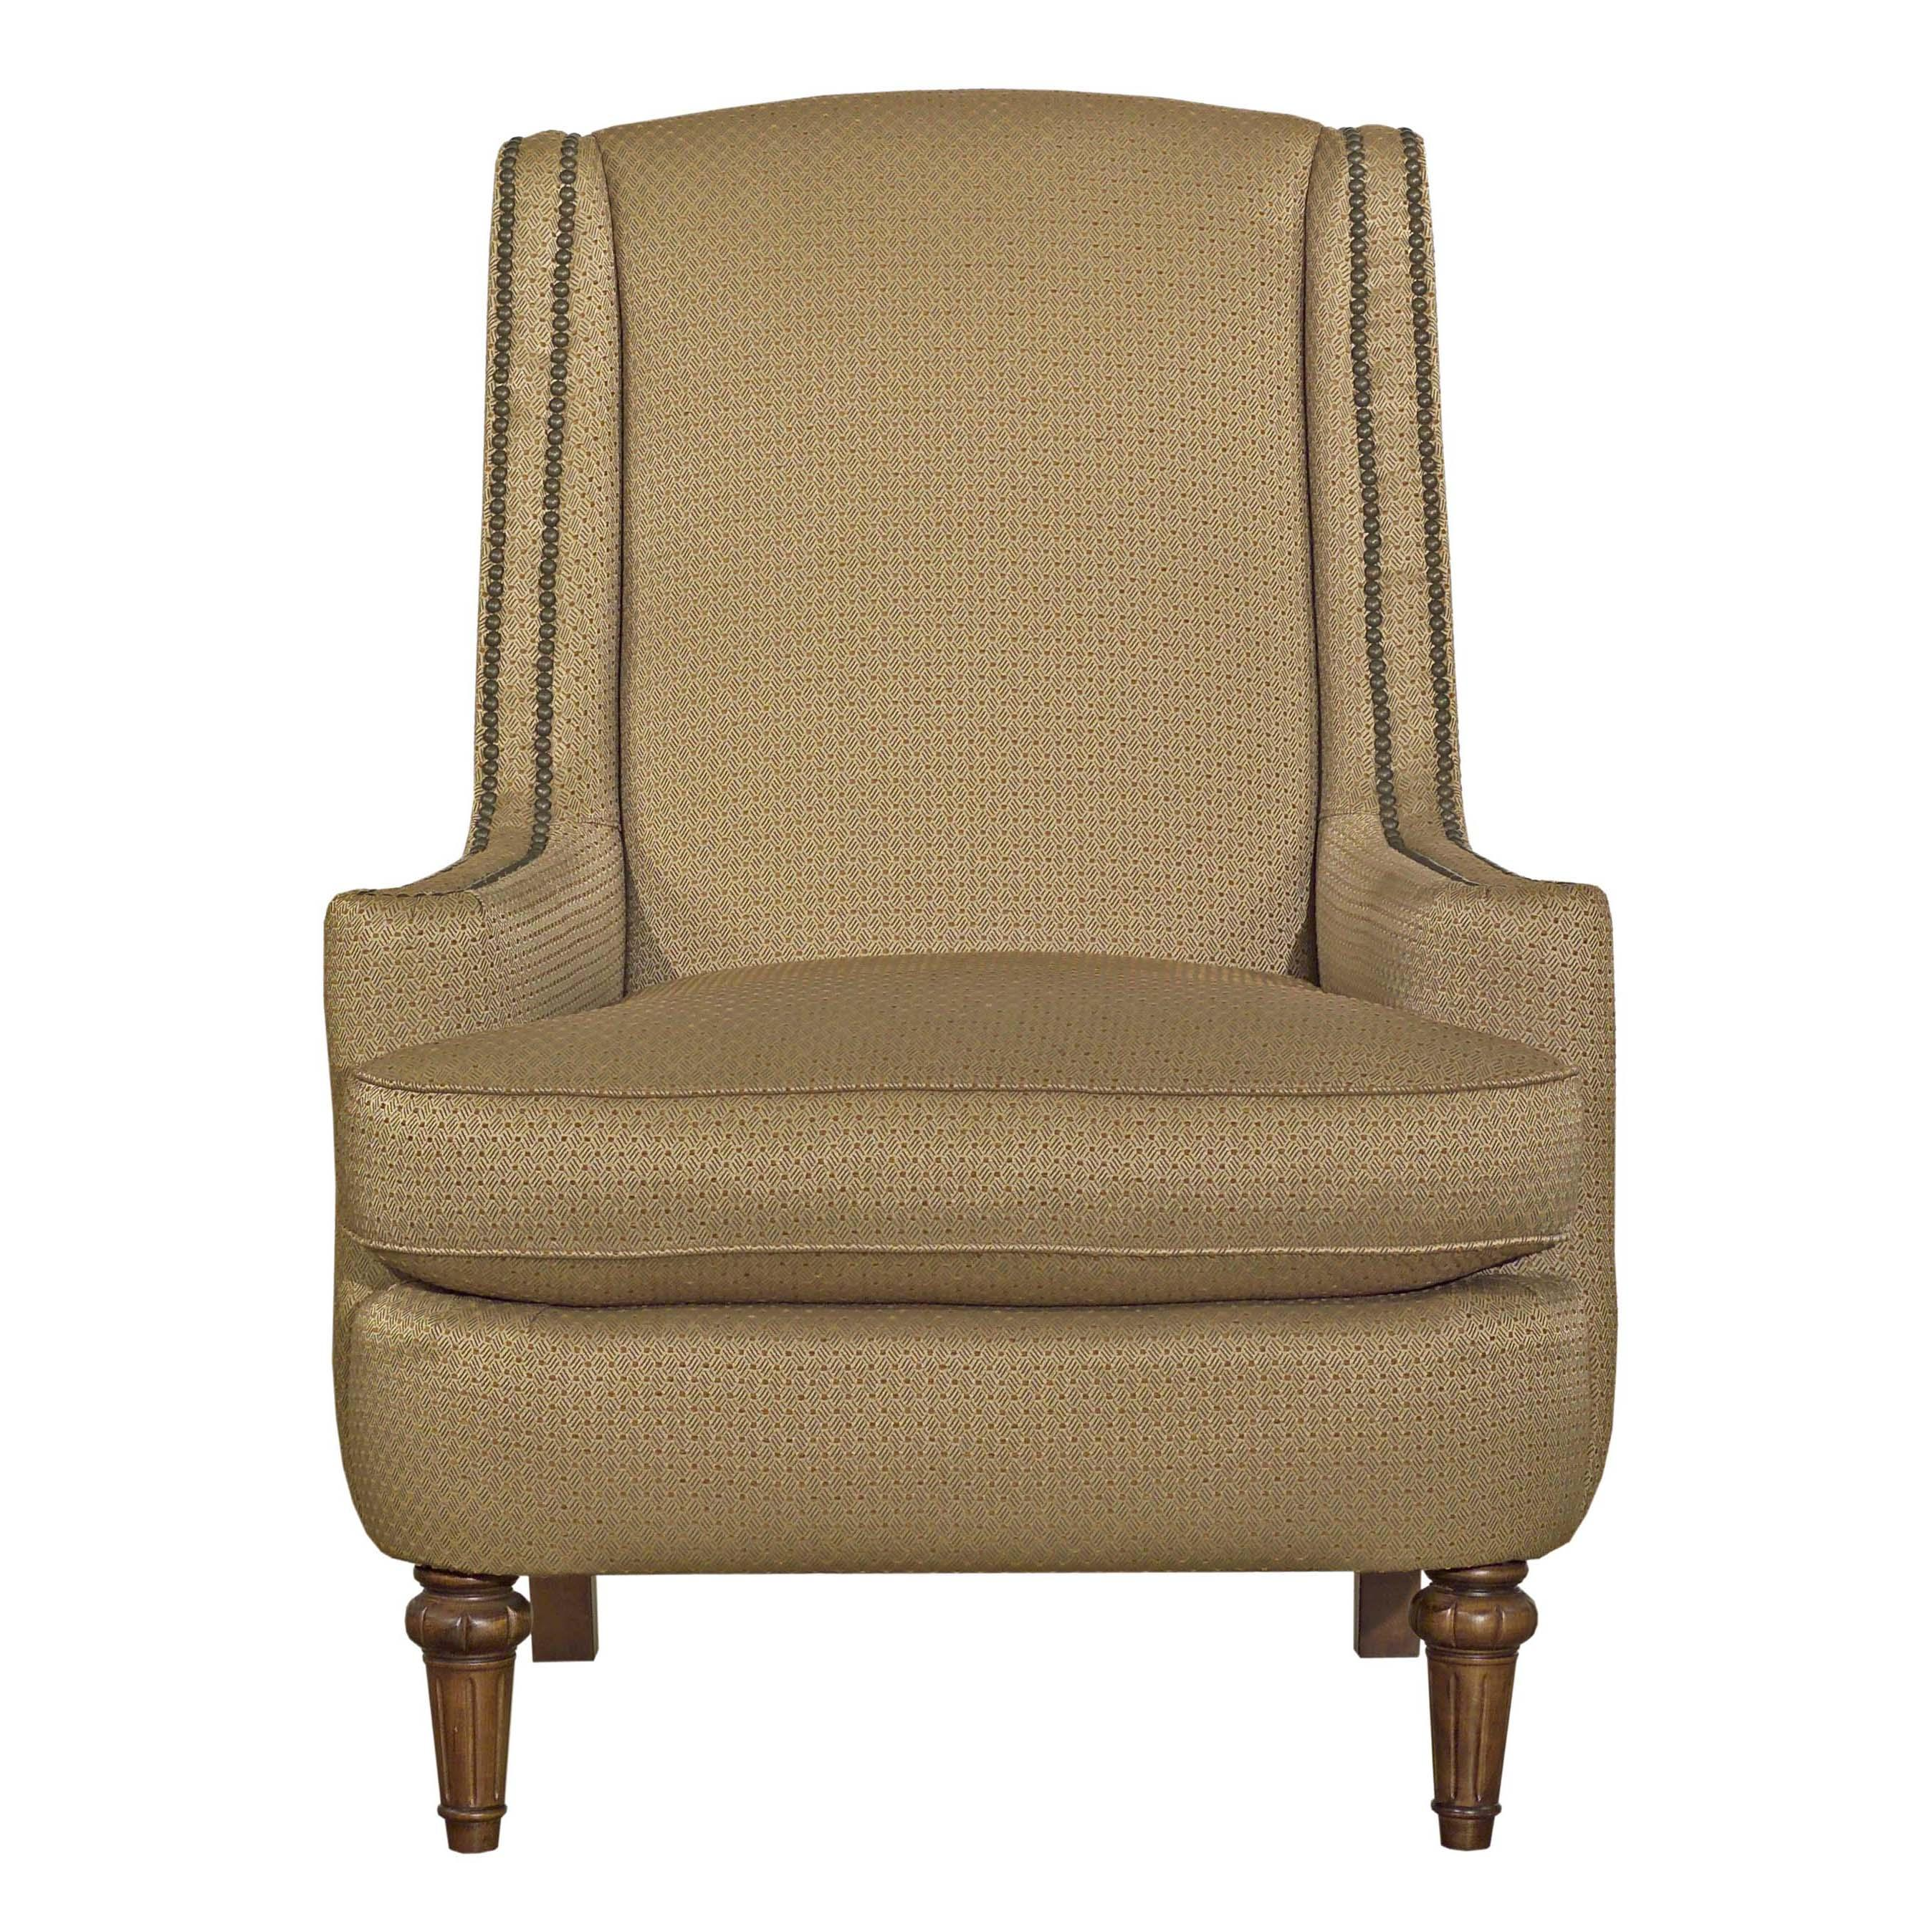 Accent Chairs Upholstered Accent Chair by Kincaid Furniture at Johnny Janosik